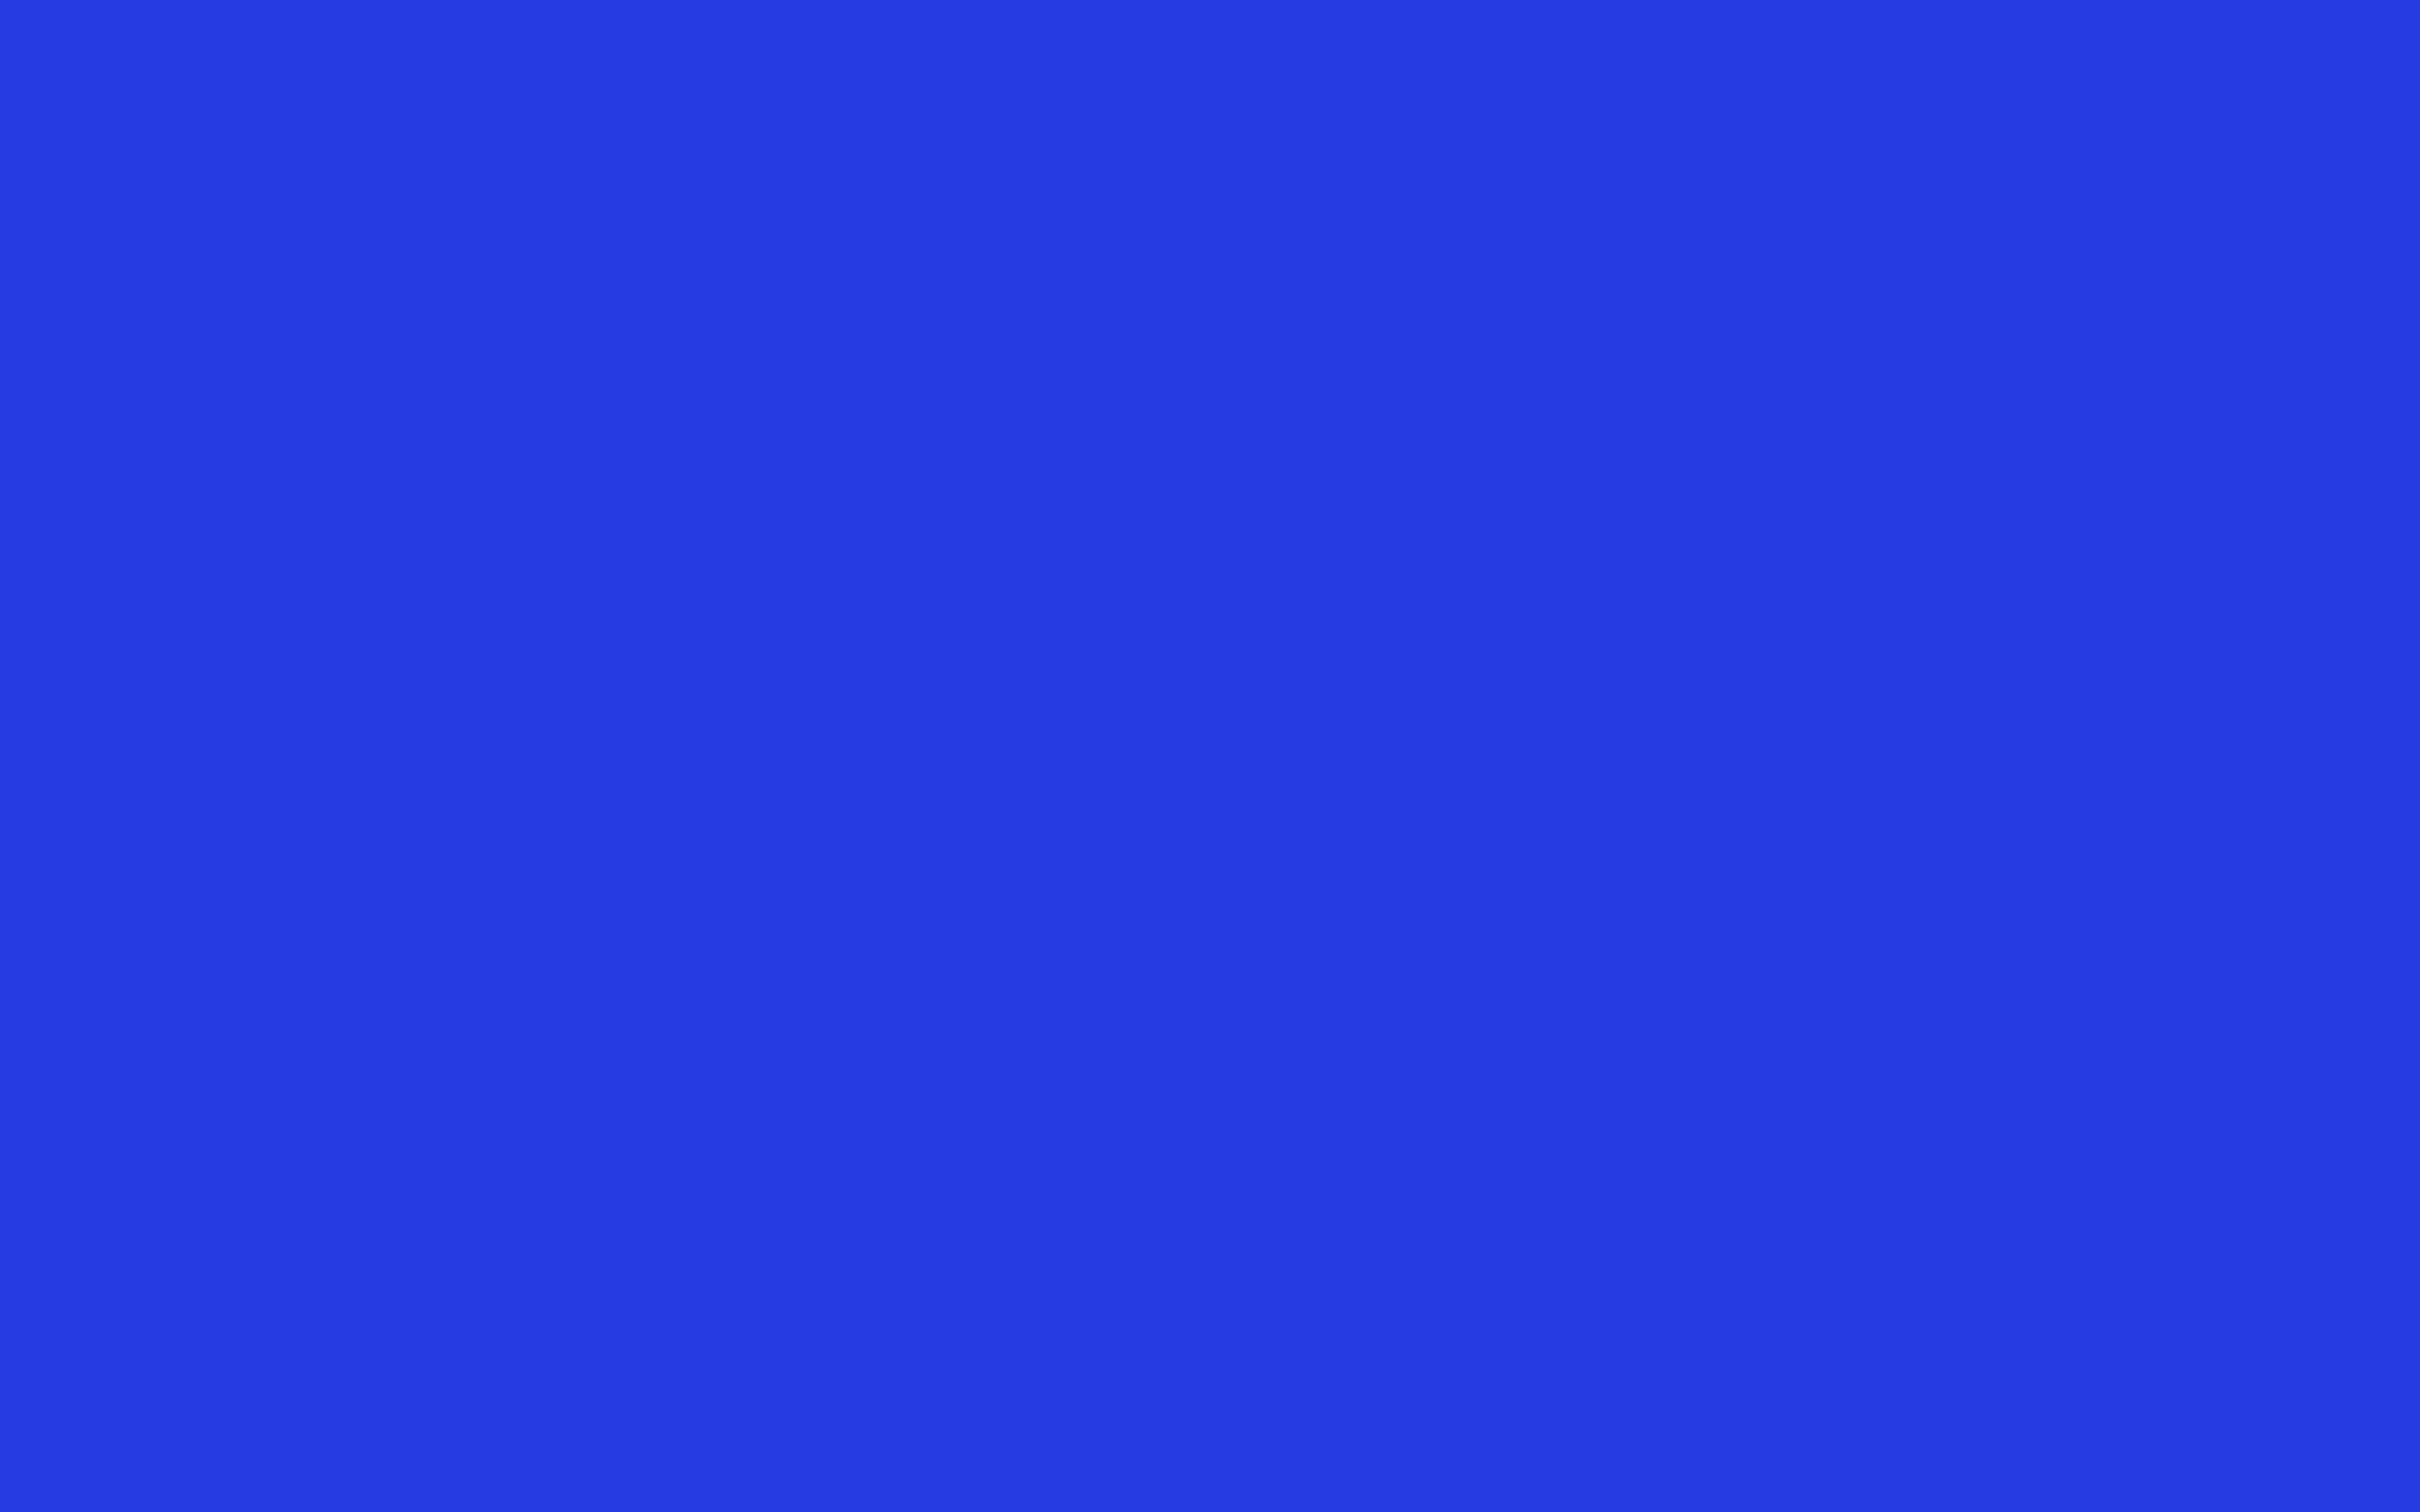 2560x1600 Palatinate Blue Solid Color Background